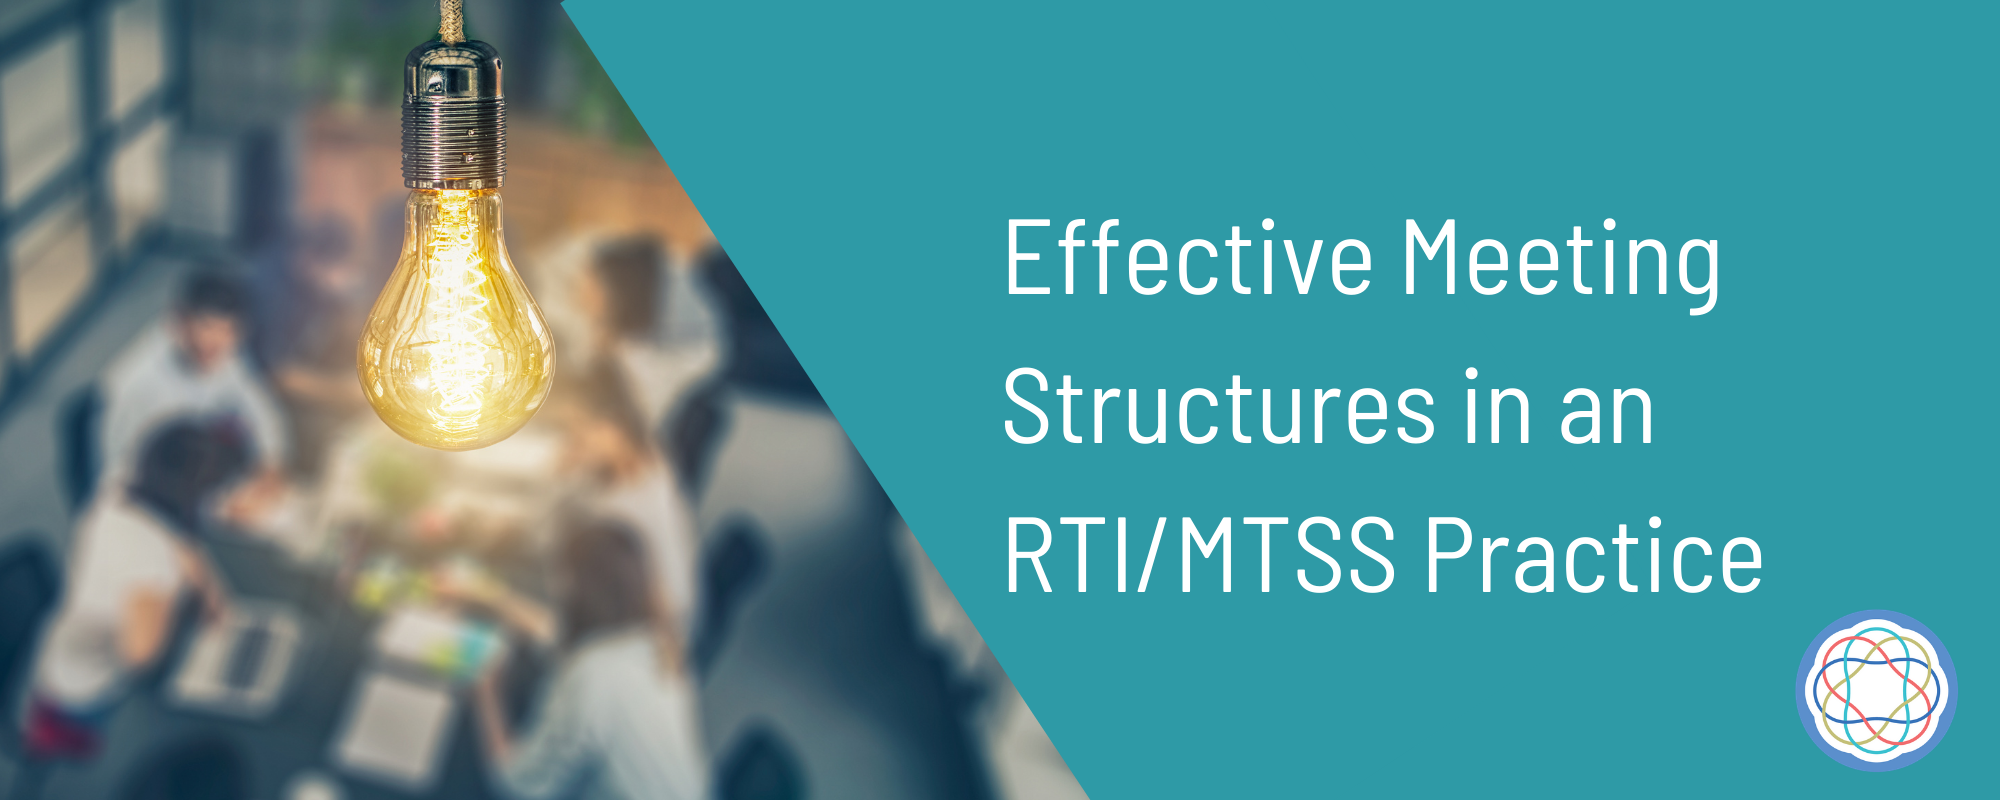 Effective Meeting structures in RTI/MTSS